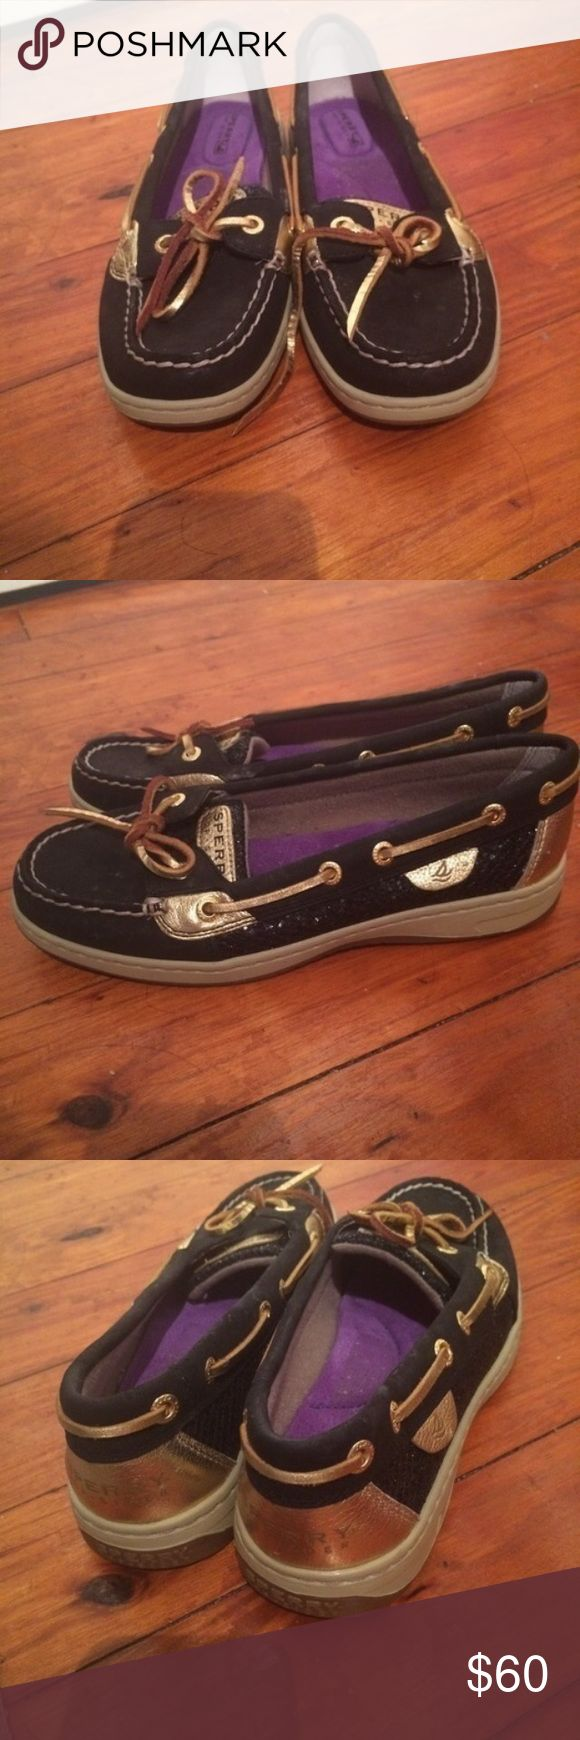 Sperry boat shoes Sperry womens angelfish boat shoes. Brand new! Never worn! Size 6.5! Black and gold! Prices are negotiable! Sperry Shoes Sneakers